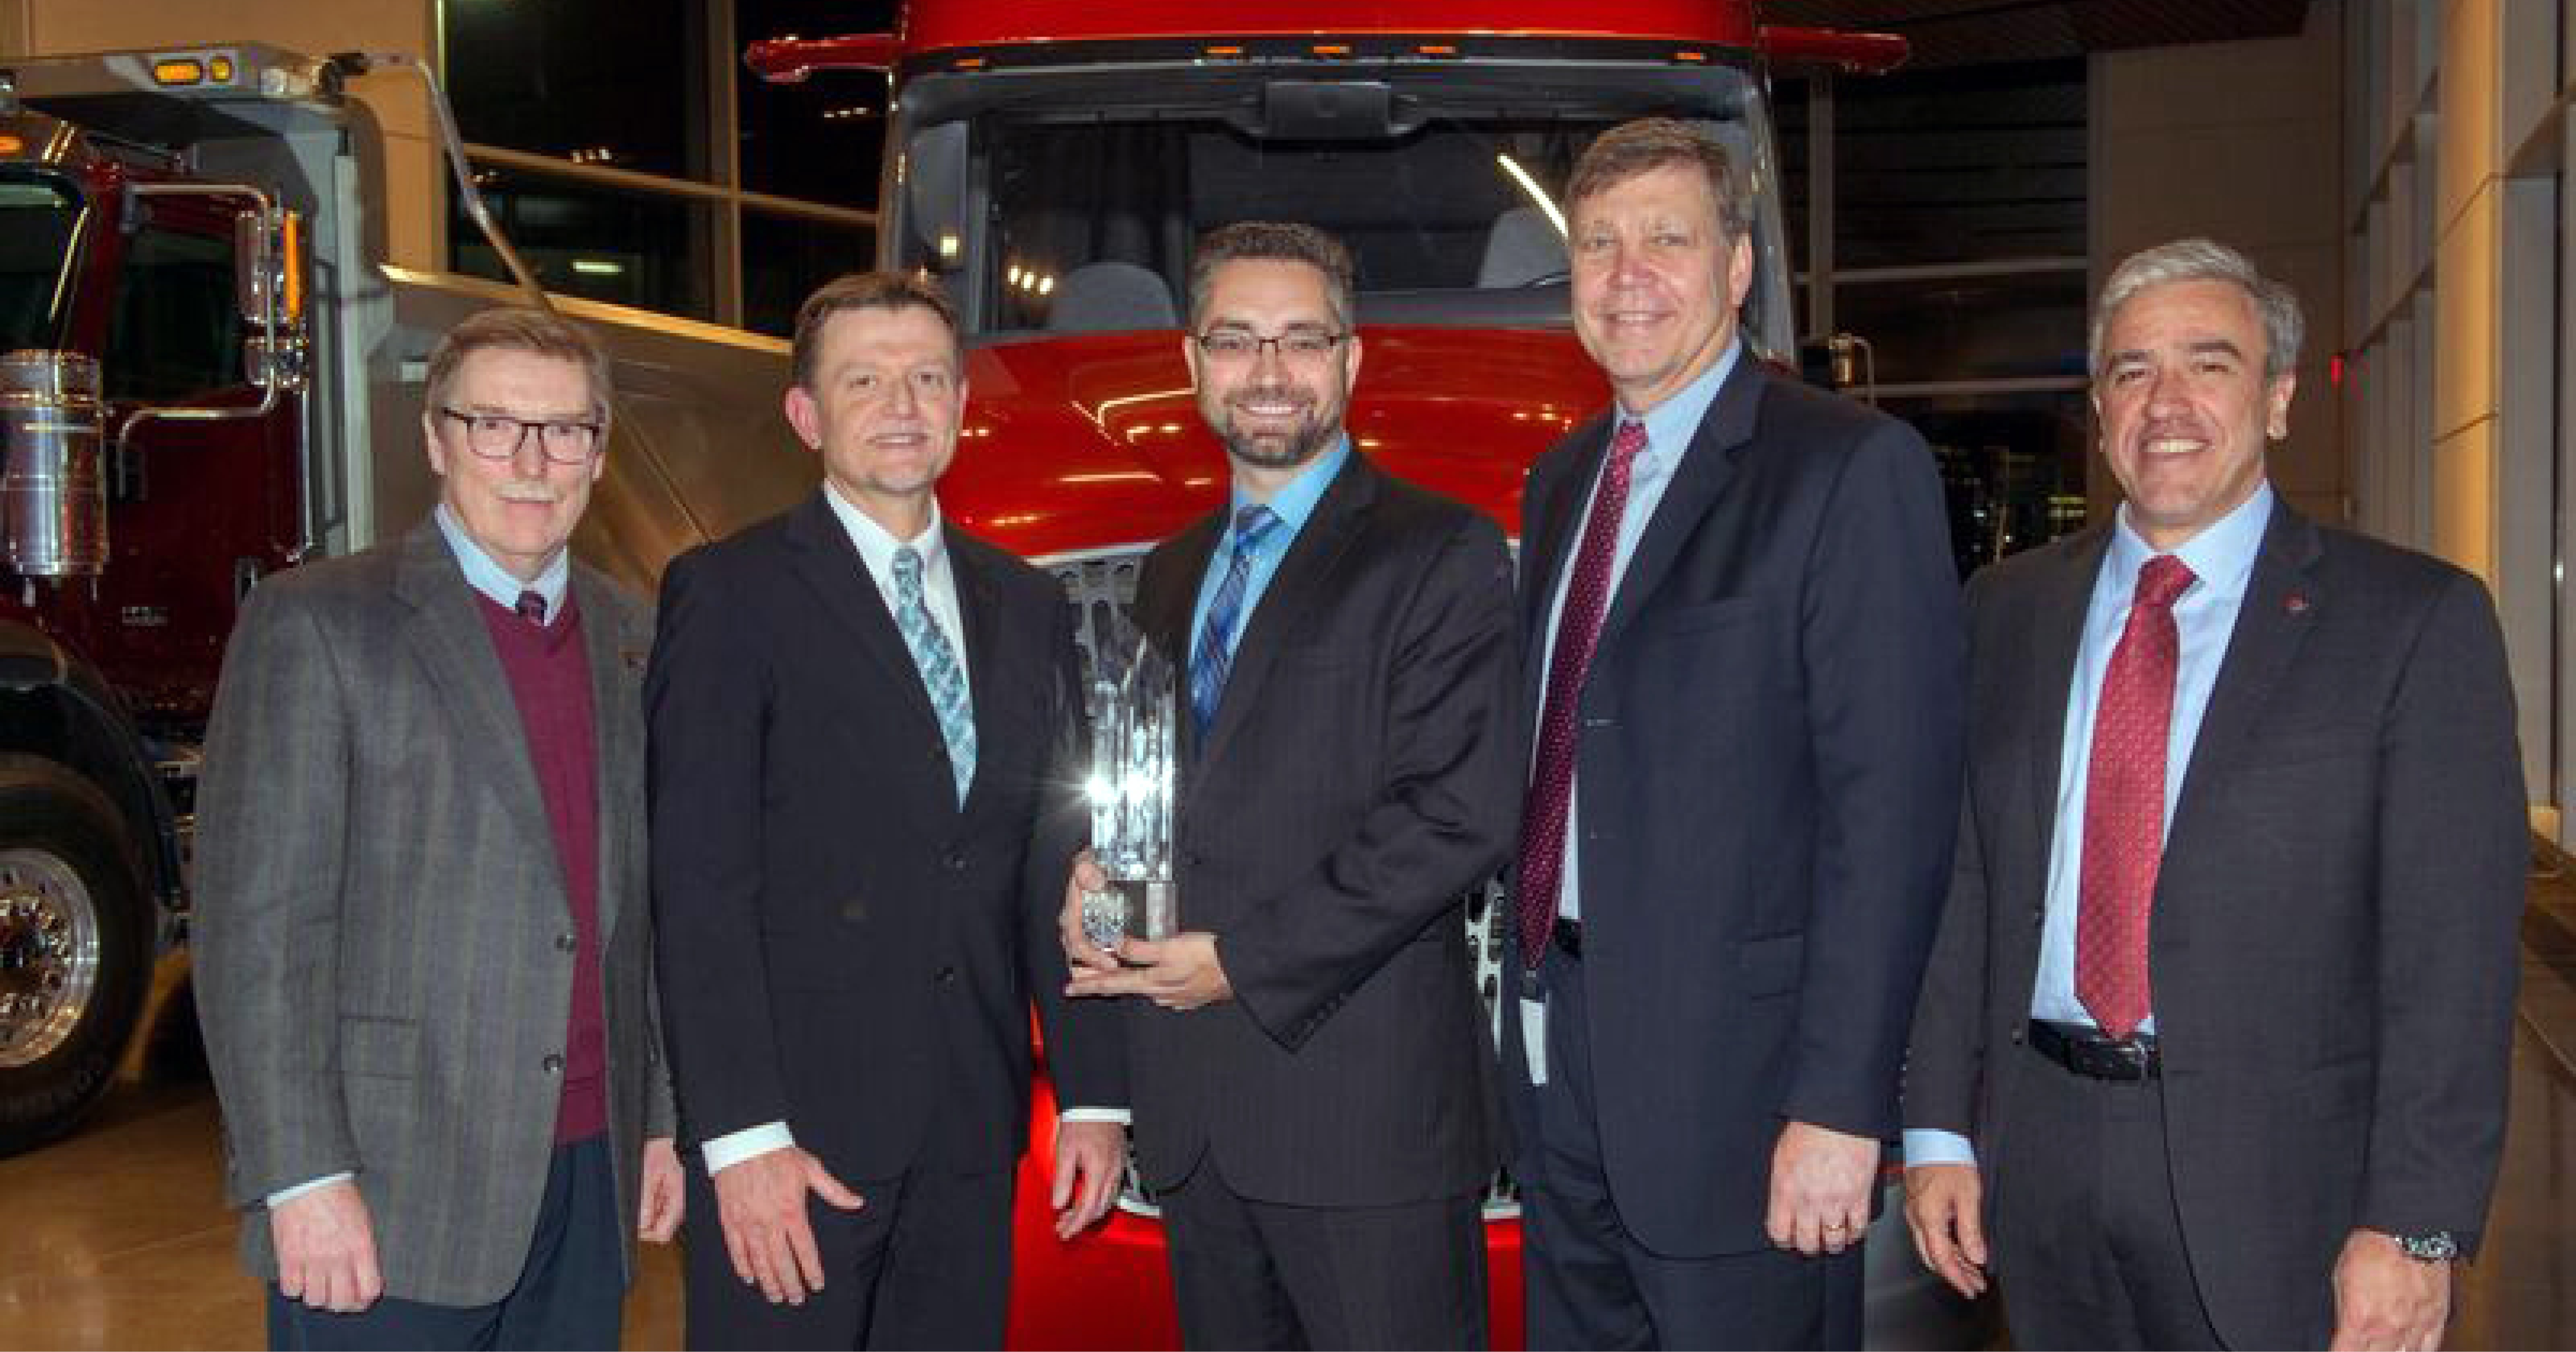 VOSS Automotive earns Navistar Diamond Supplier Award for the fourth consecutive year.